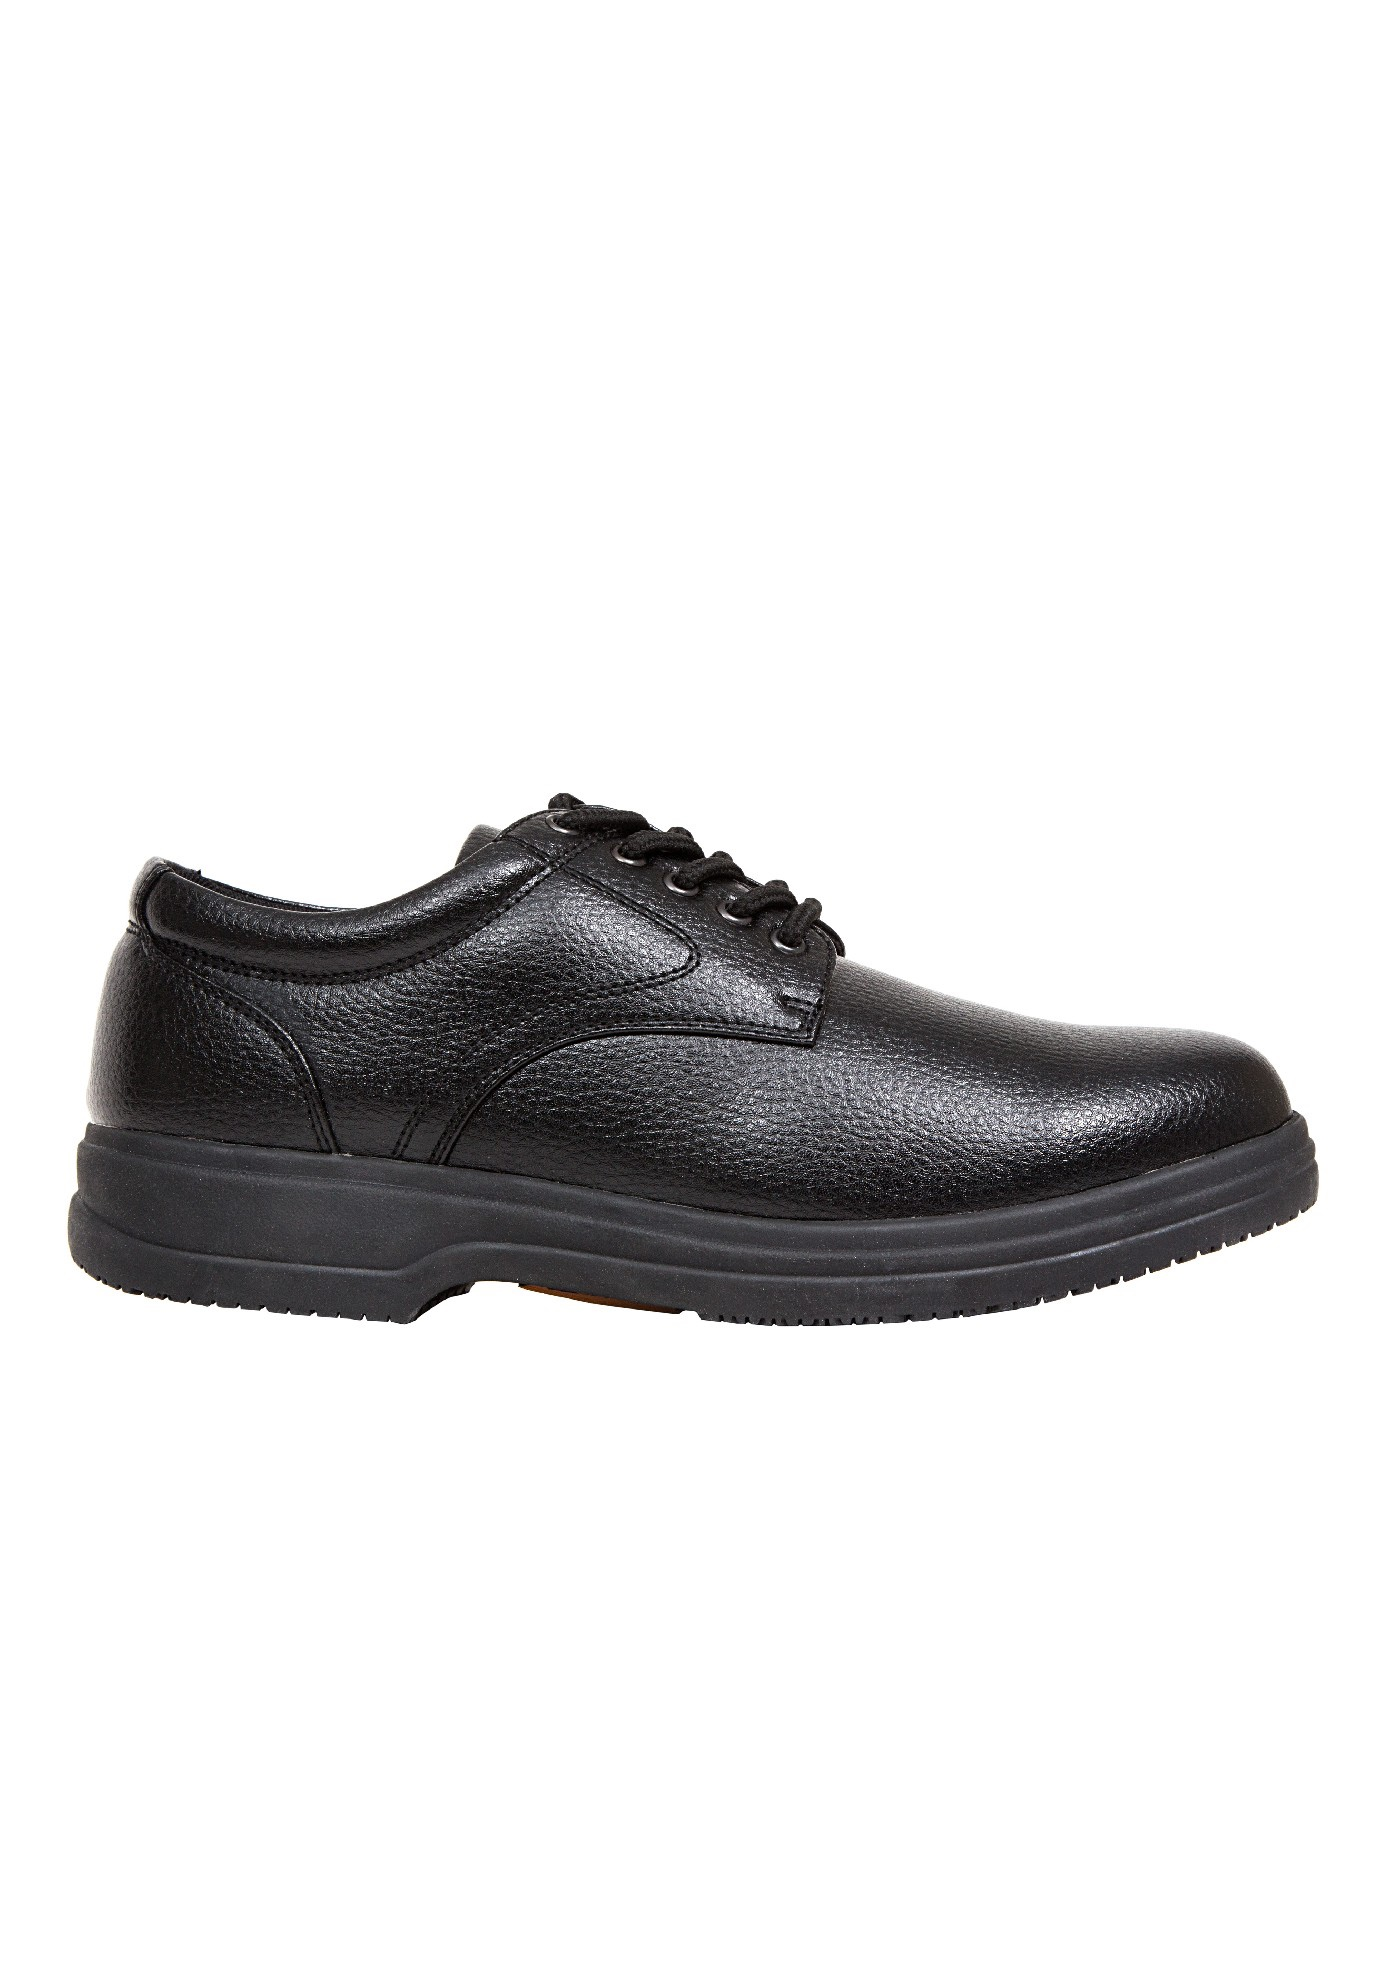 Deer Stags® Service Comfort Oxford Shoes,